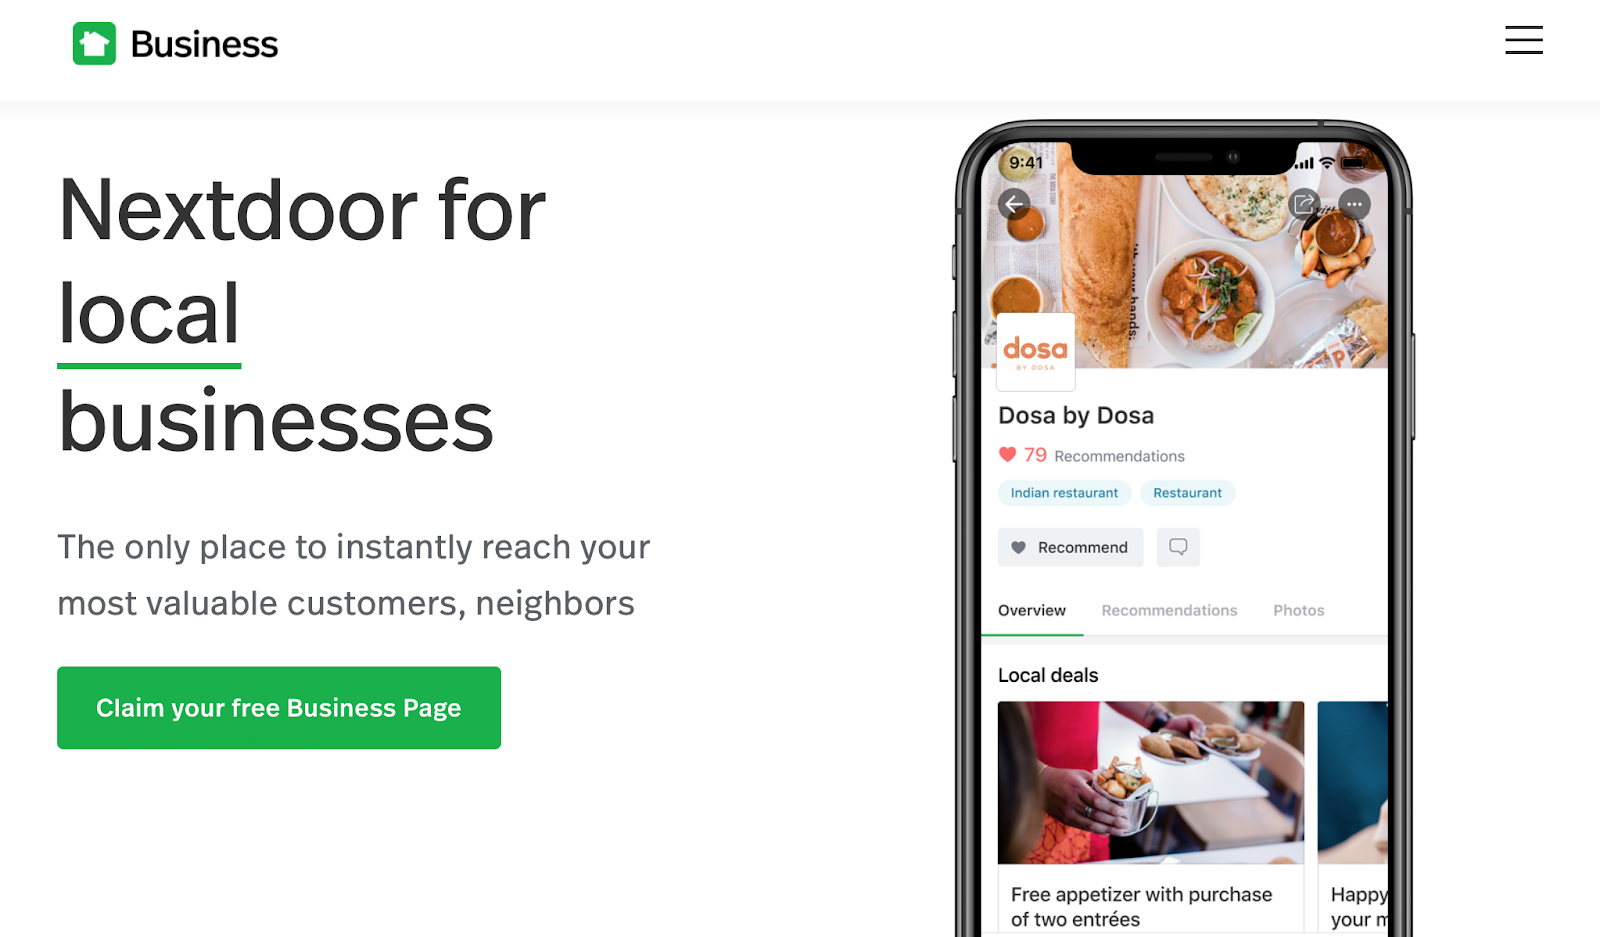 Nextdoor for local businesses